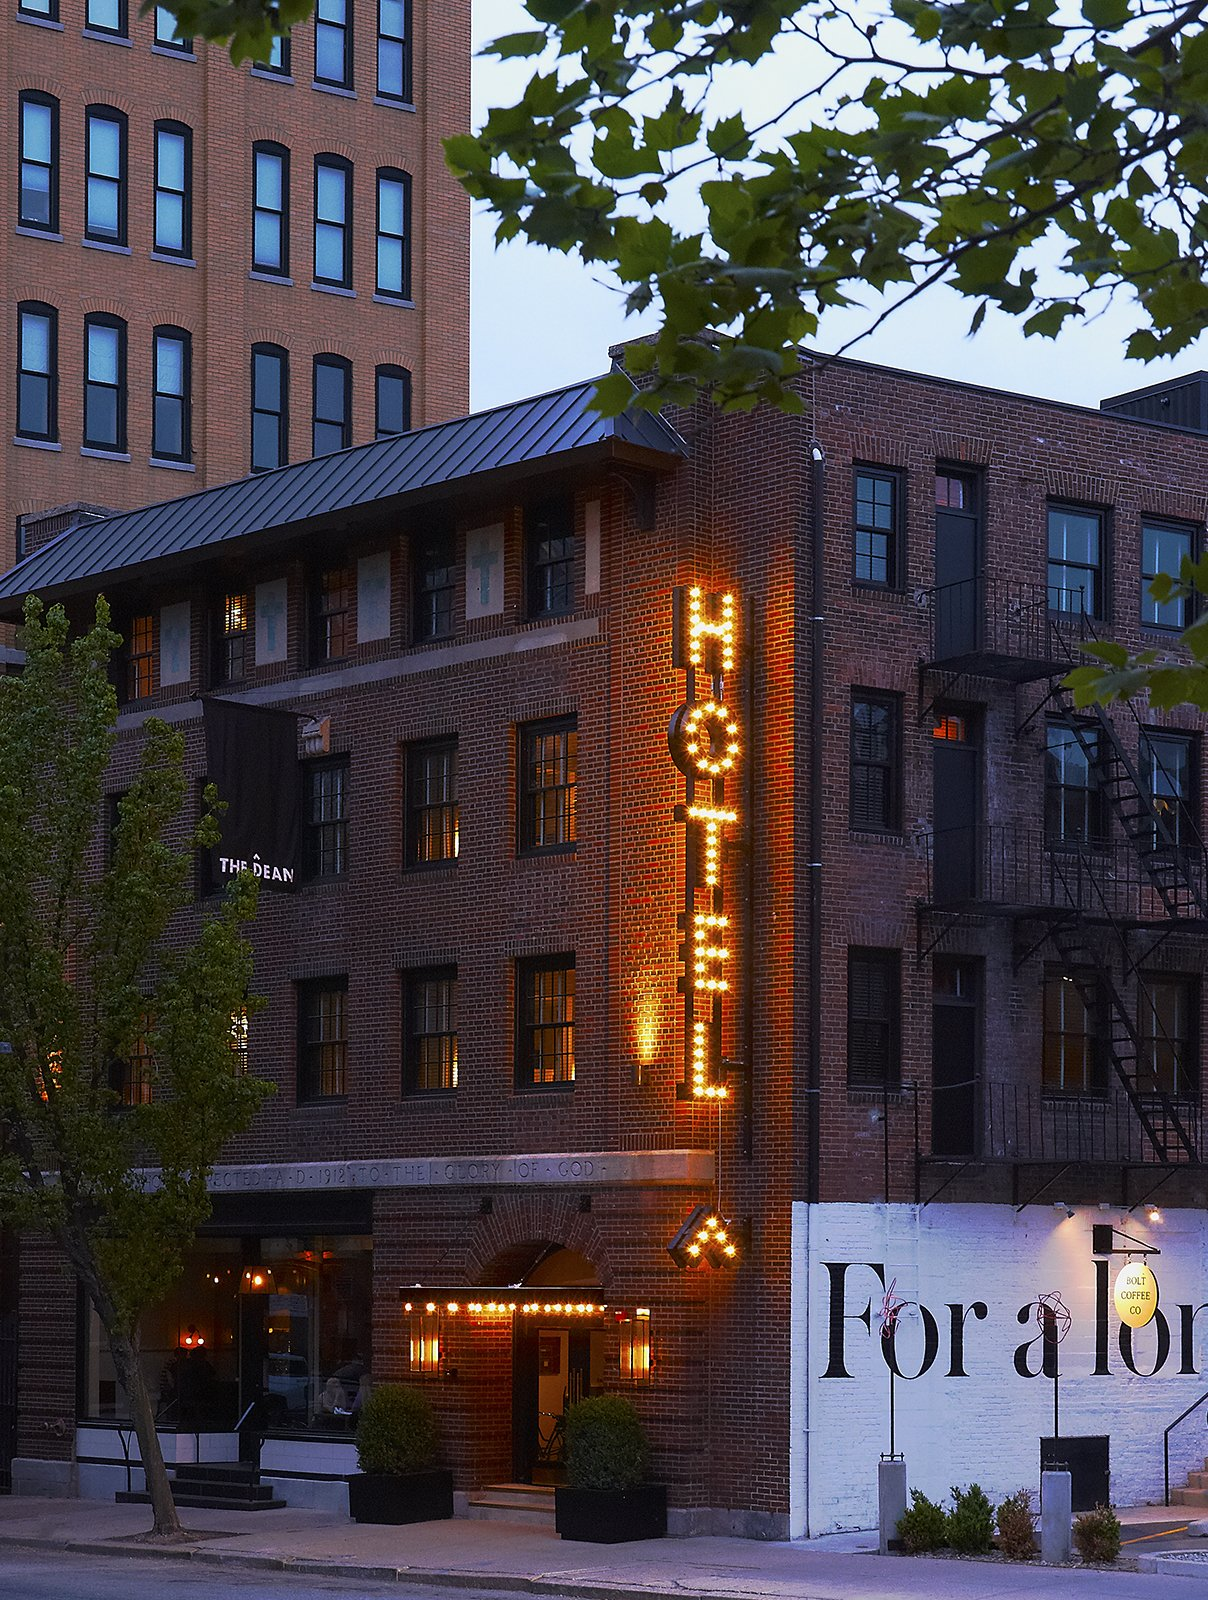 The Dean Hotel in Providence